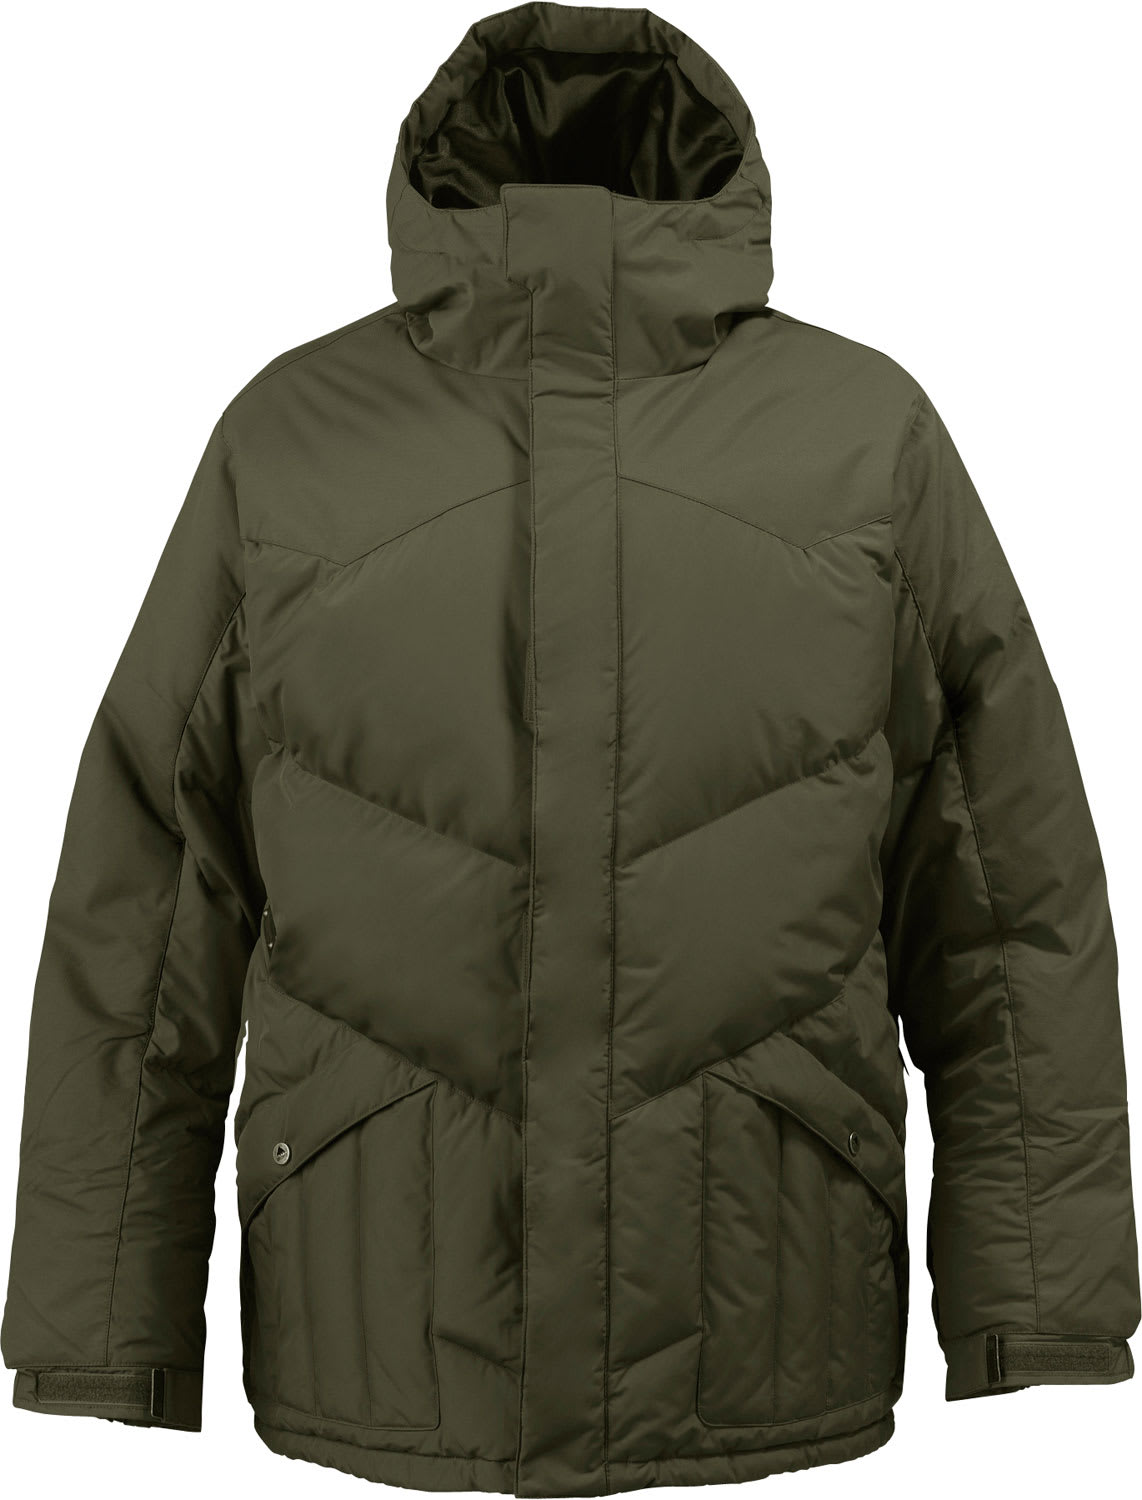 Shop for Burton Kush Down Snowboard Jacket Trench - Men's